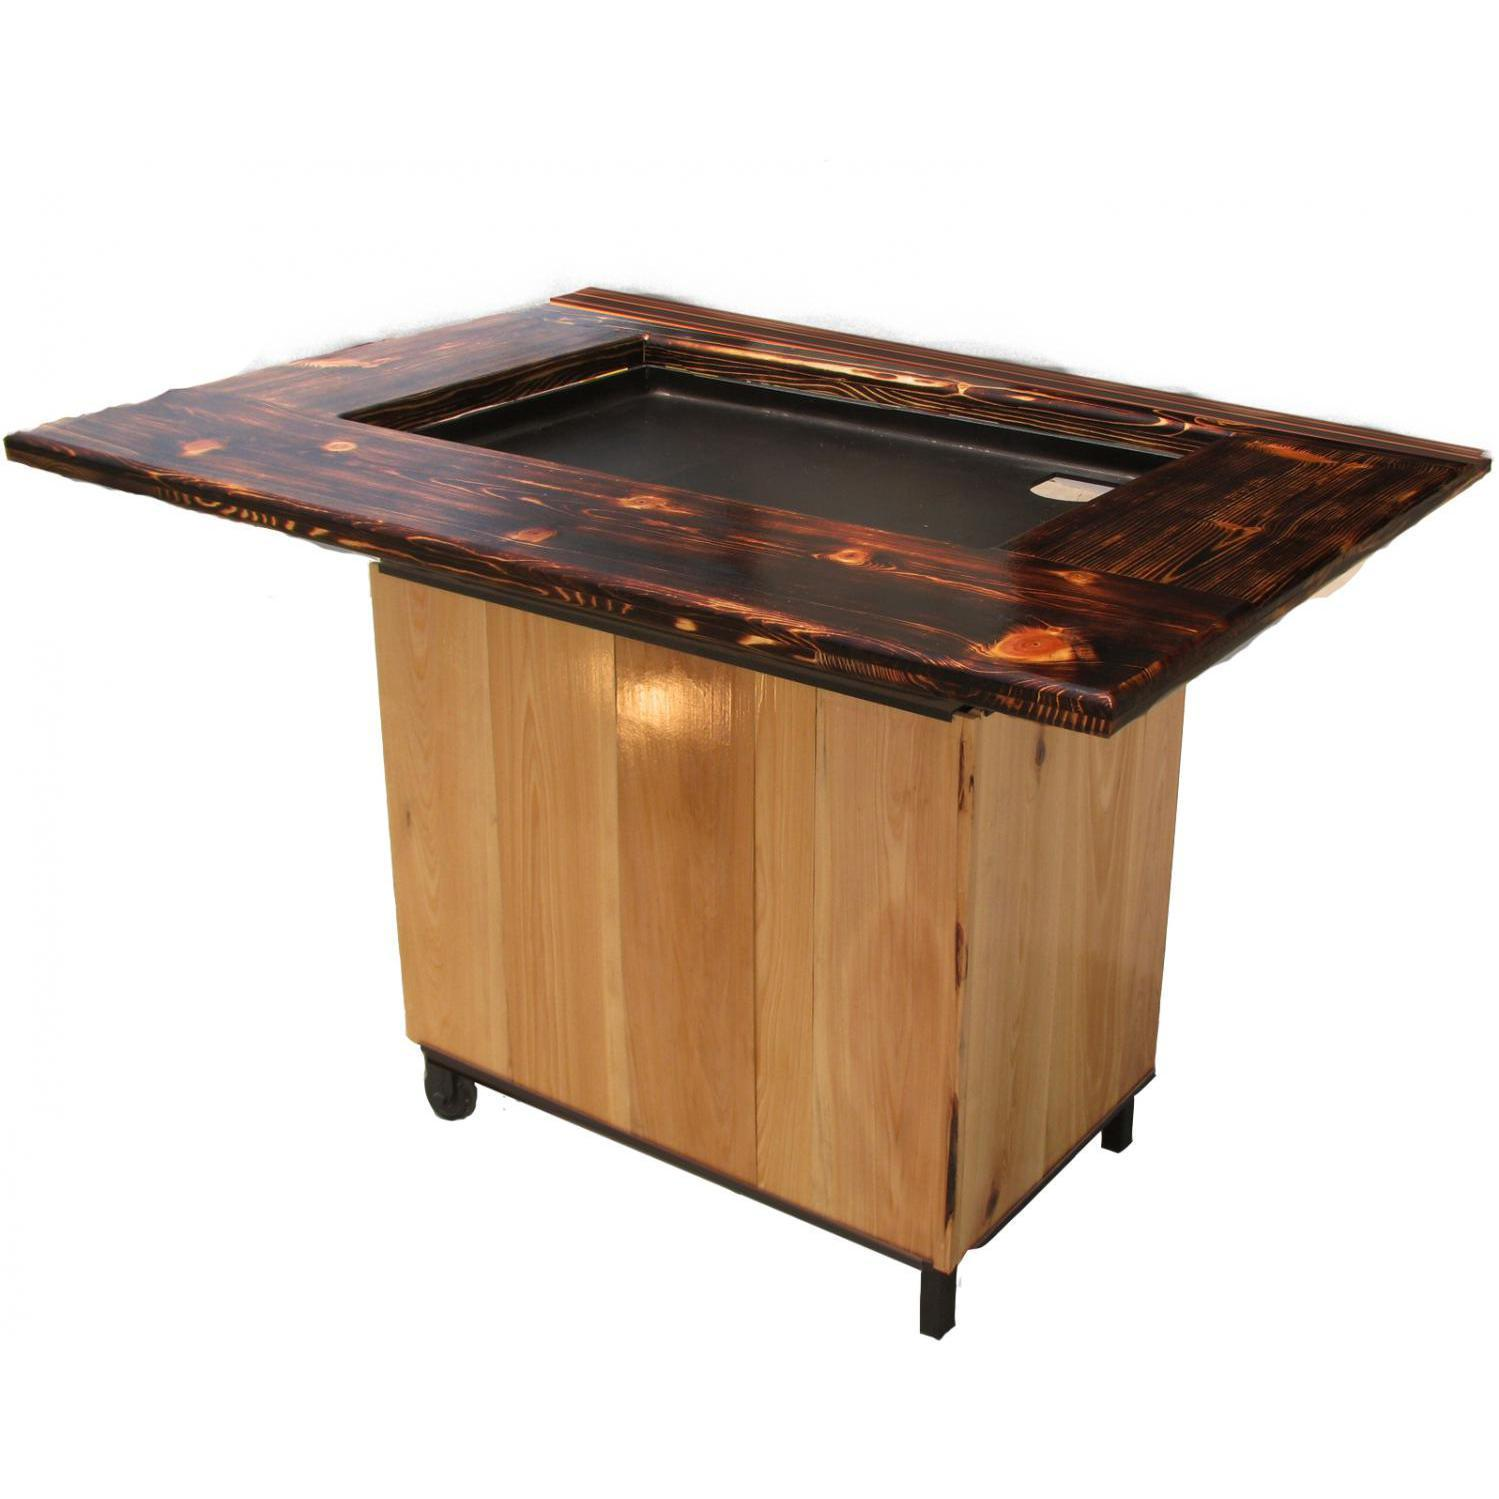 backyard hibachi flattop propane gas grill torched cypress bbq guys side table outdoor patio furniture collections small accent chairs glass desk coffee and end tables wood